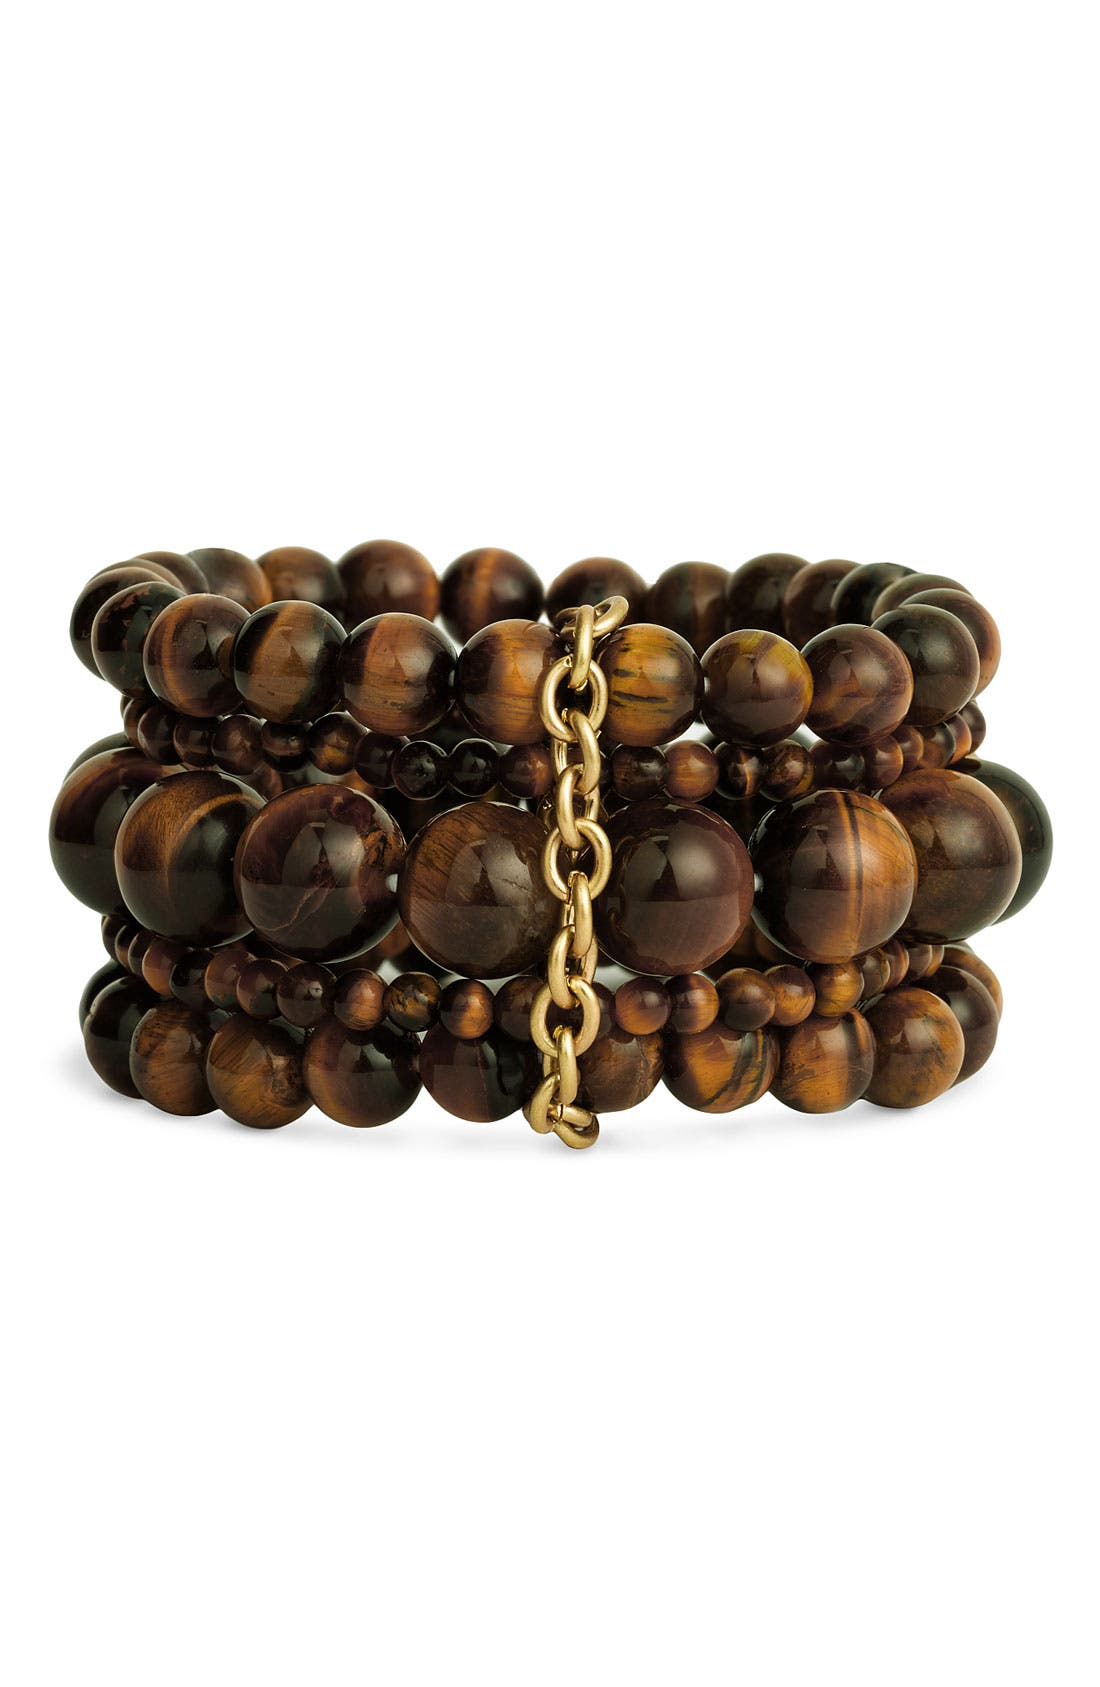 Alternate Image 1 Selected - Nordstrom Semiprecious Bead Stretch Bracelets (Set of 5)